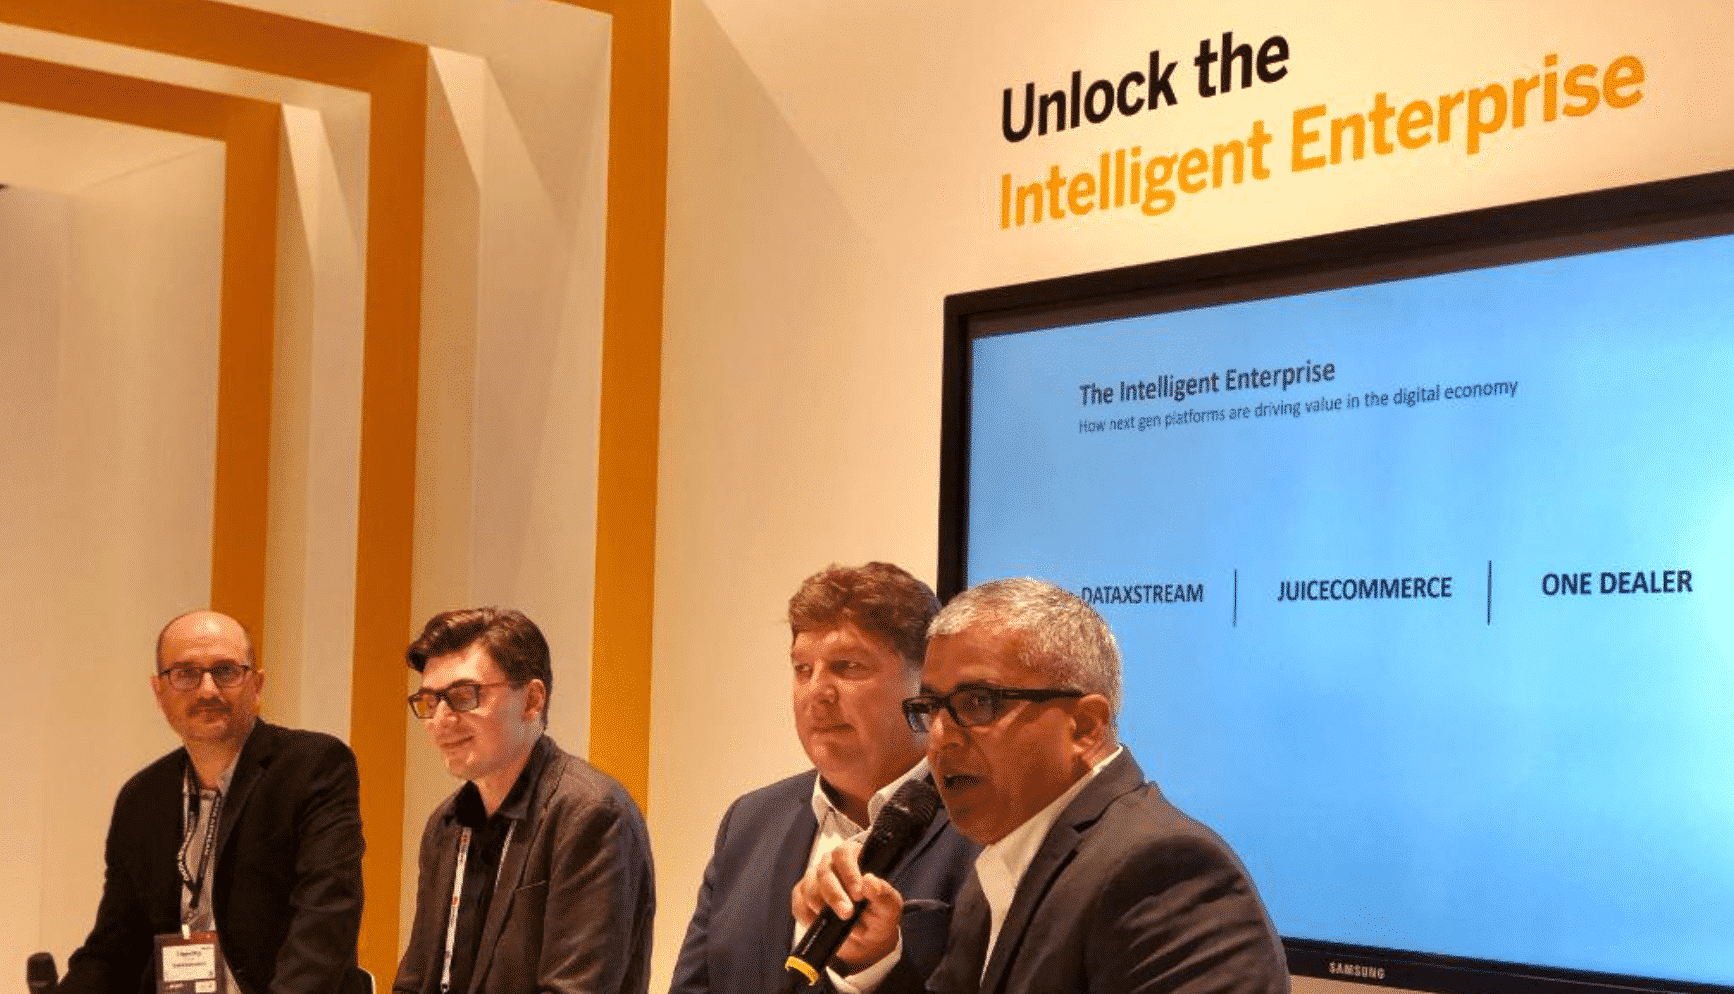 sap partners, sapappcenter, mwc2019, barcelona, tim yates, dataxstream, partner solutions, intelligent enterprise, digital economy